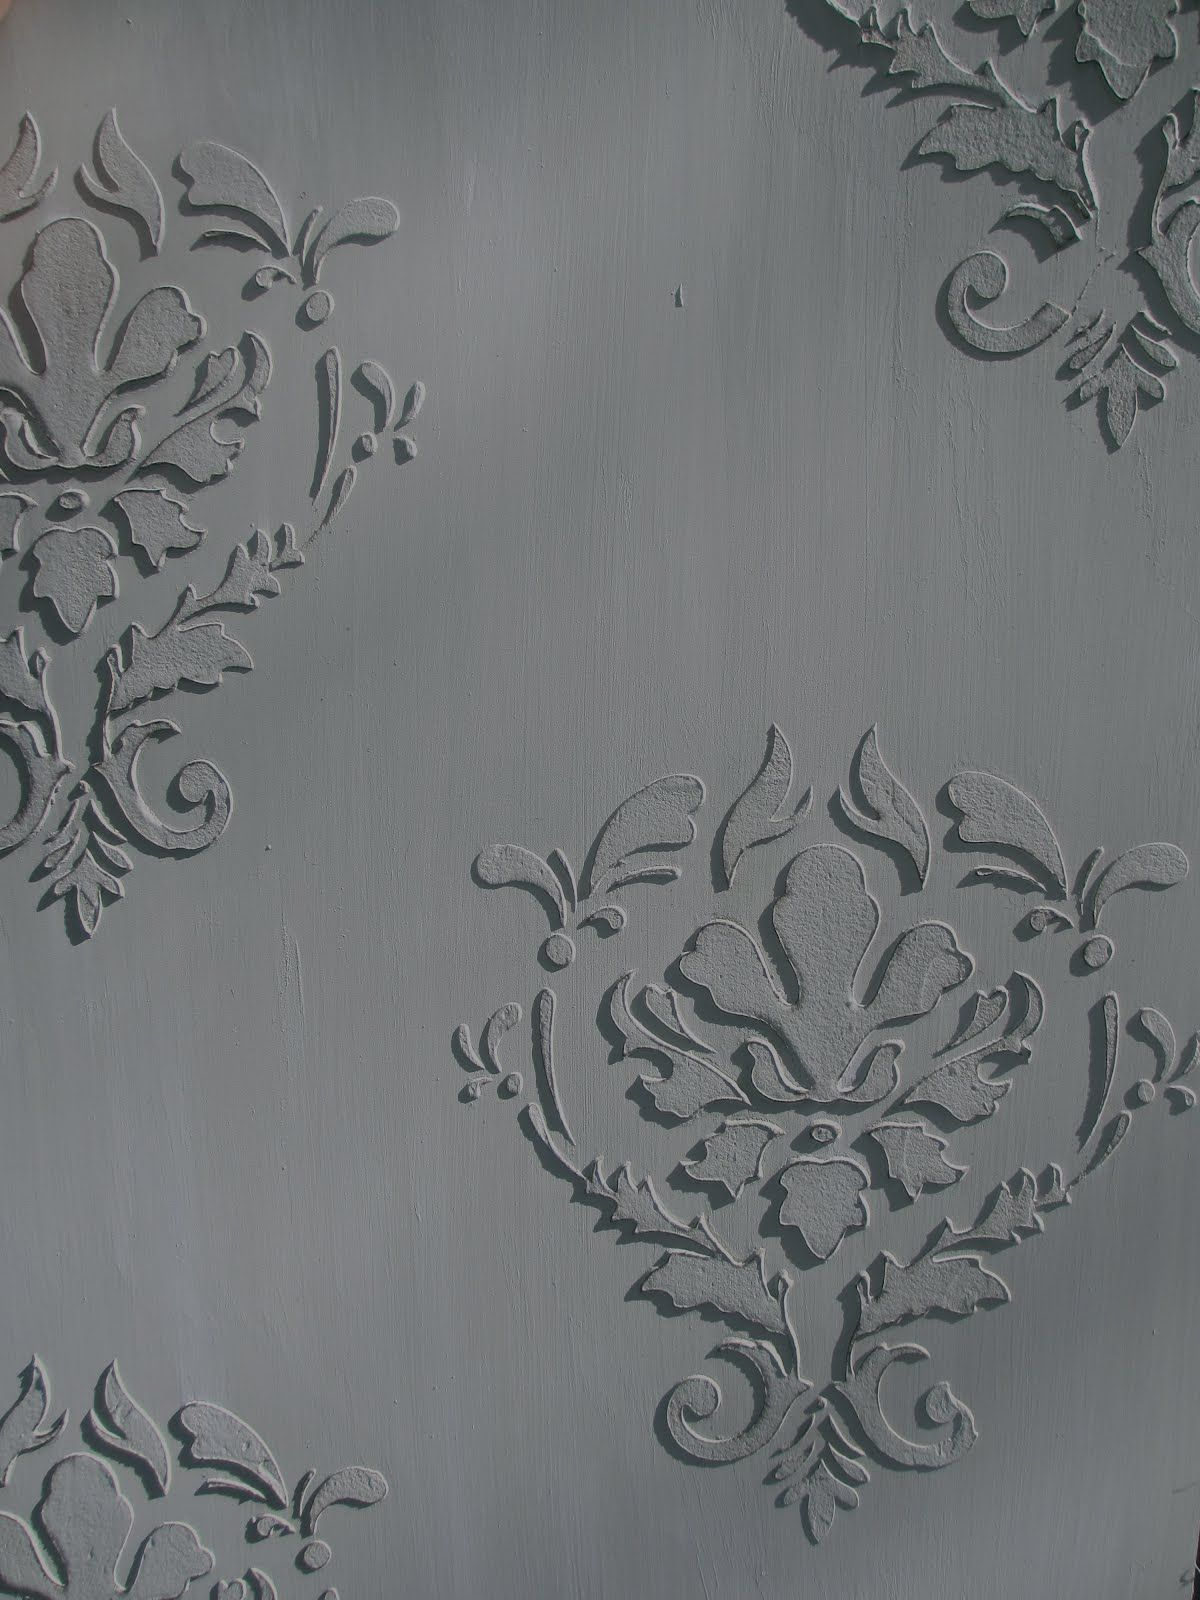 image stencils furniture painting. Find This Pin And More On Furniture Painting Ideas By Wiccarox101. Image Stencils